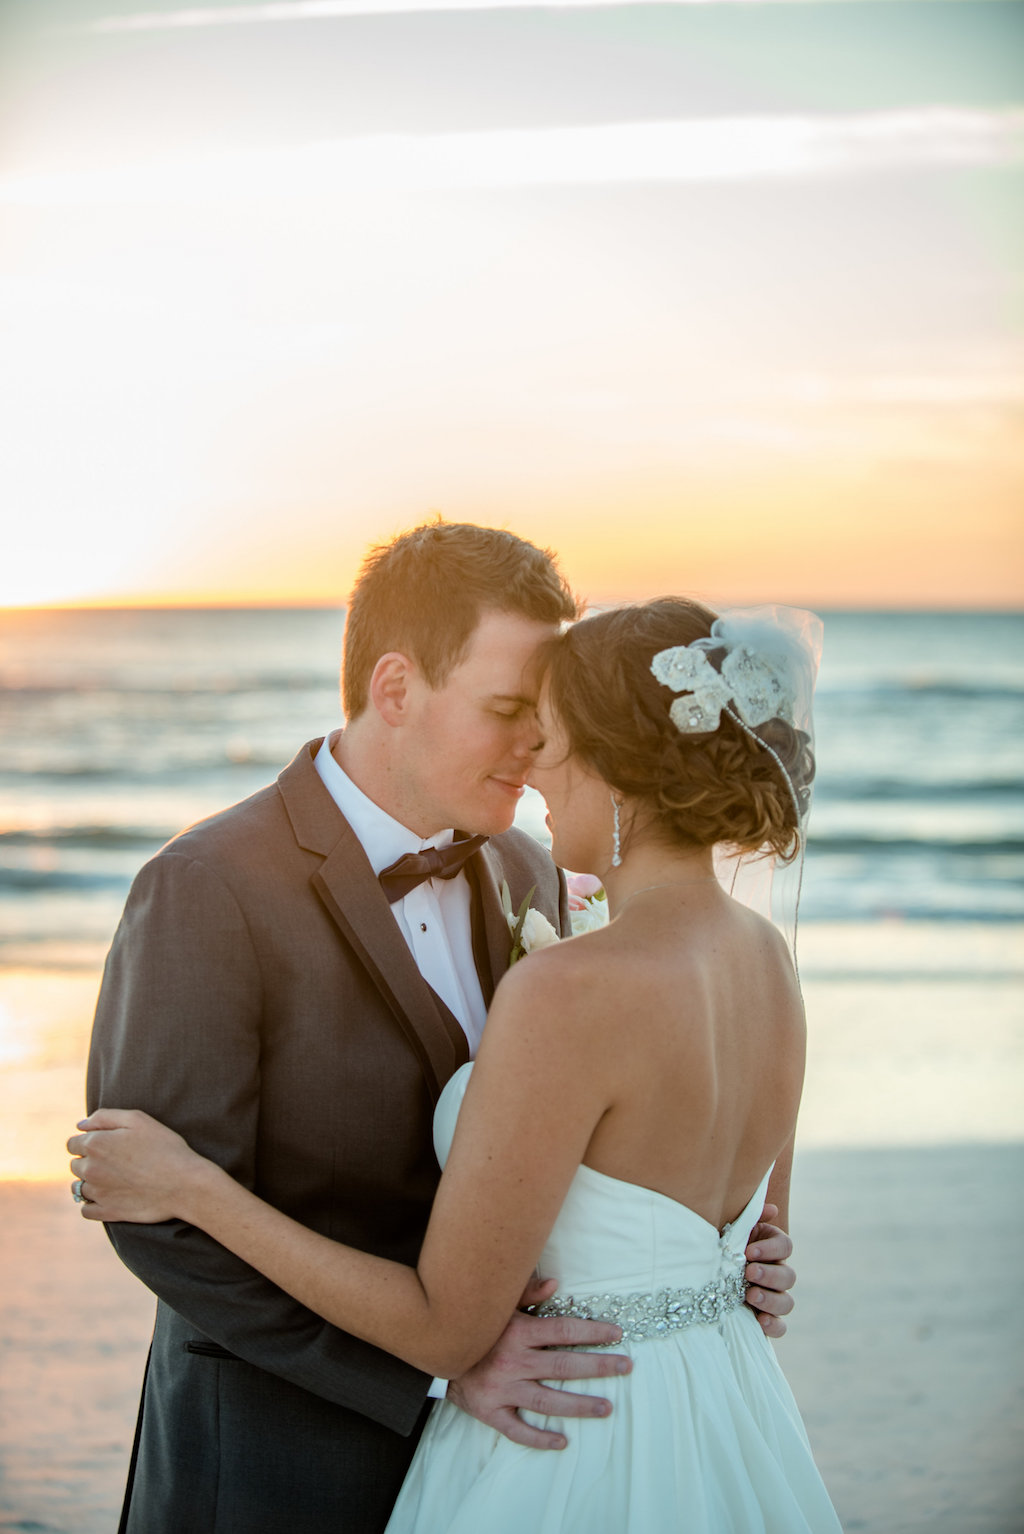 Outdoor Beach Wedding Portrait with Pink and White Bouquet, Groom in Gray Suit | St Petersburg Florida Wedding Venue The Don Cesar | Tampa Bay Wedding Photographer Caroline and Evan Photography